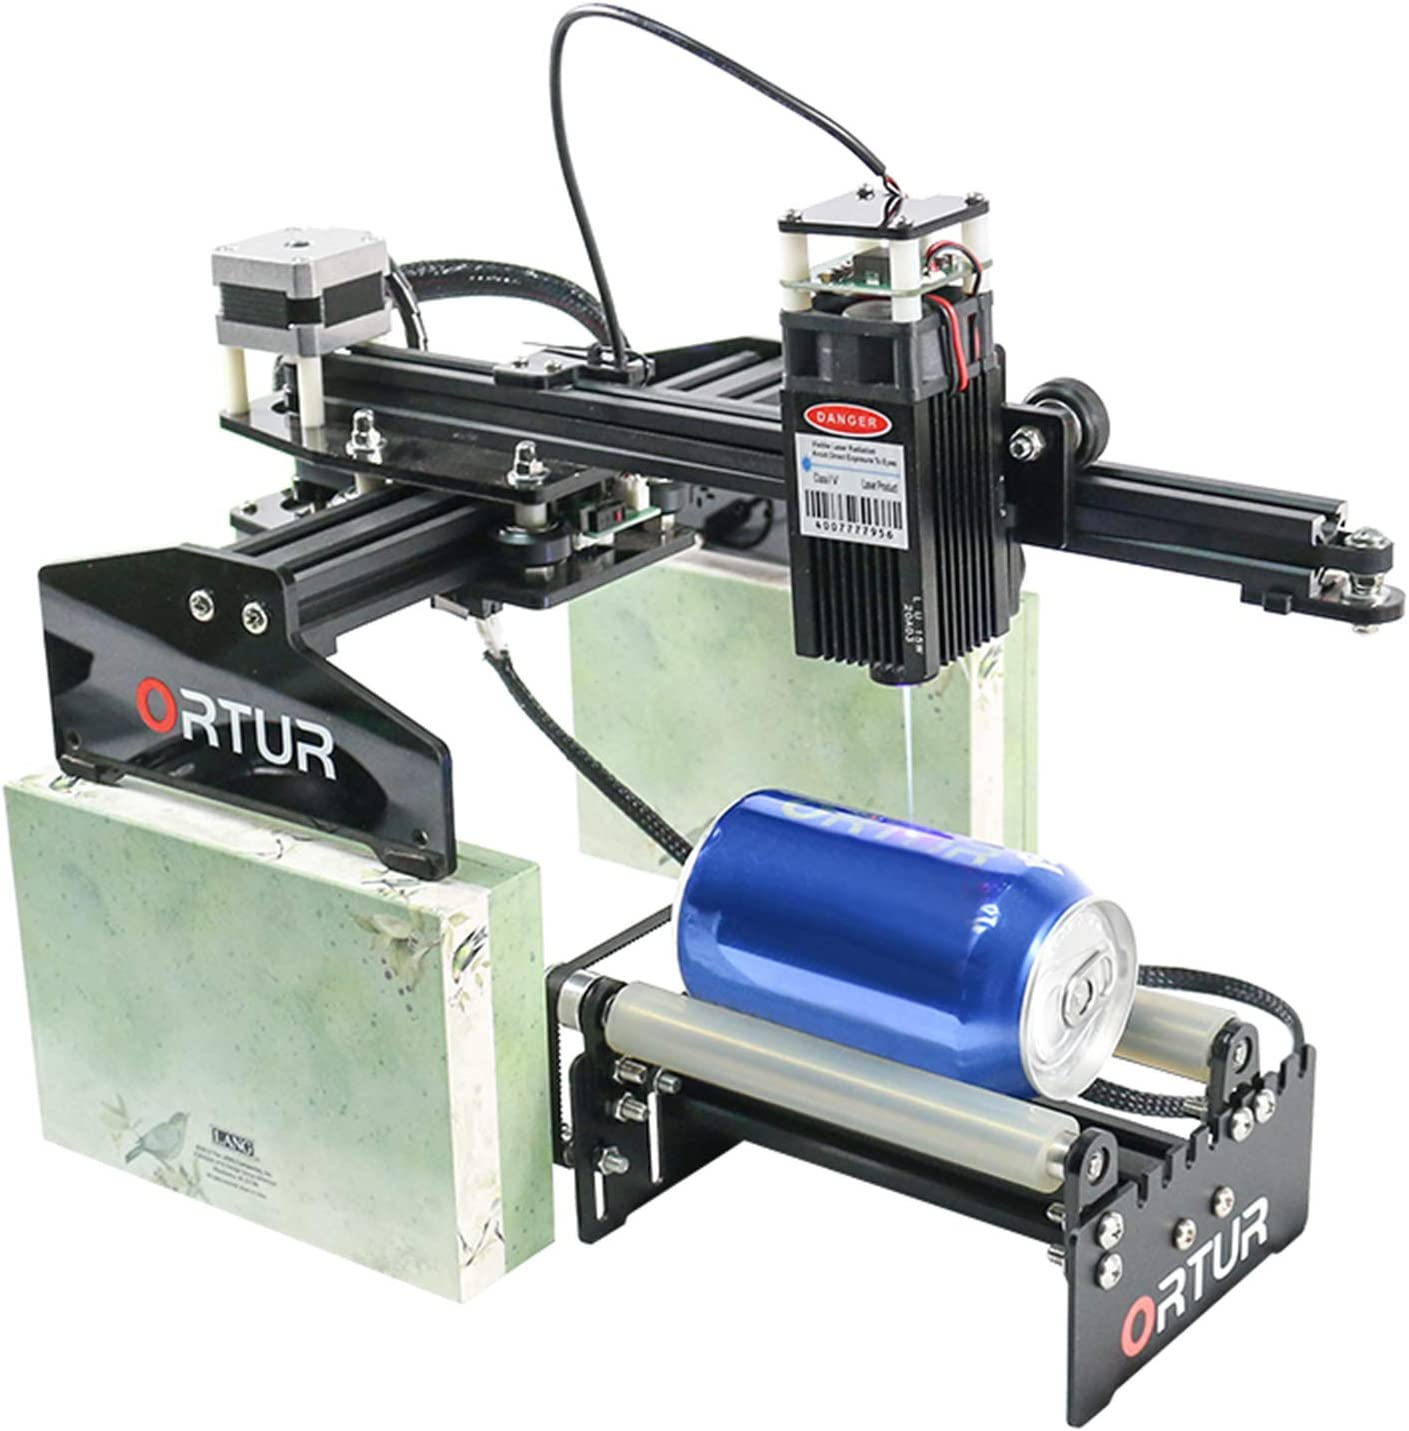 ORTUR Laser Engraver Y-axis Rotary Roller Engraving Module for Engraving Cylindrical Objects Cans